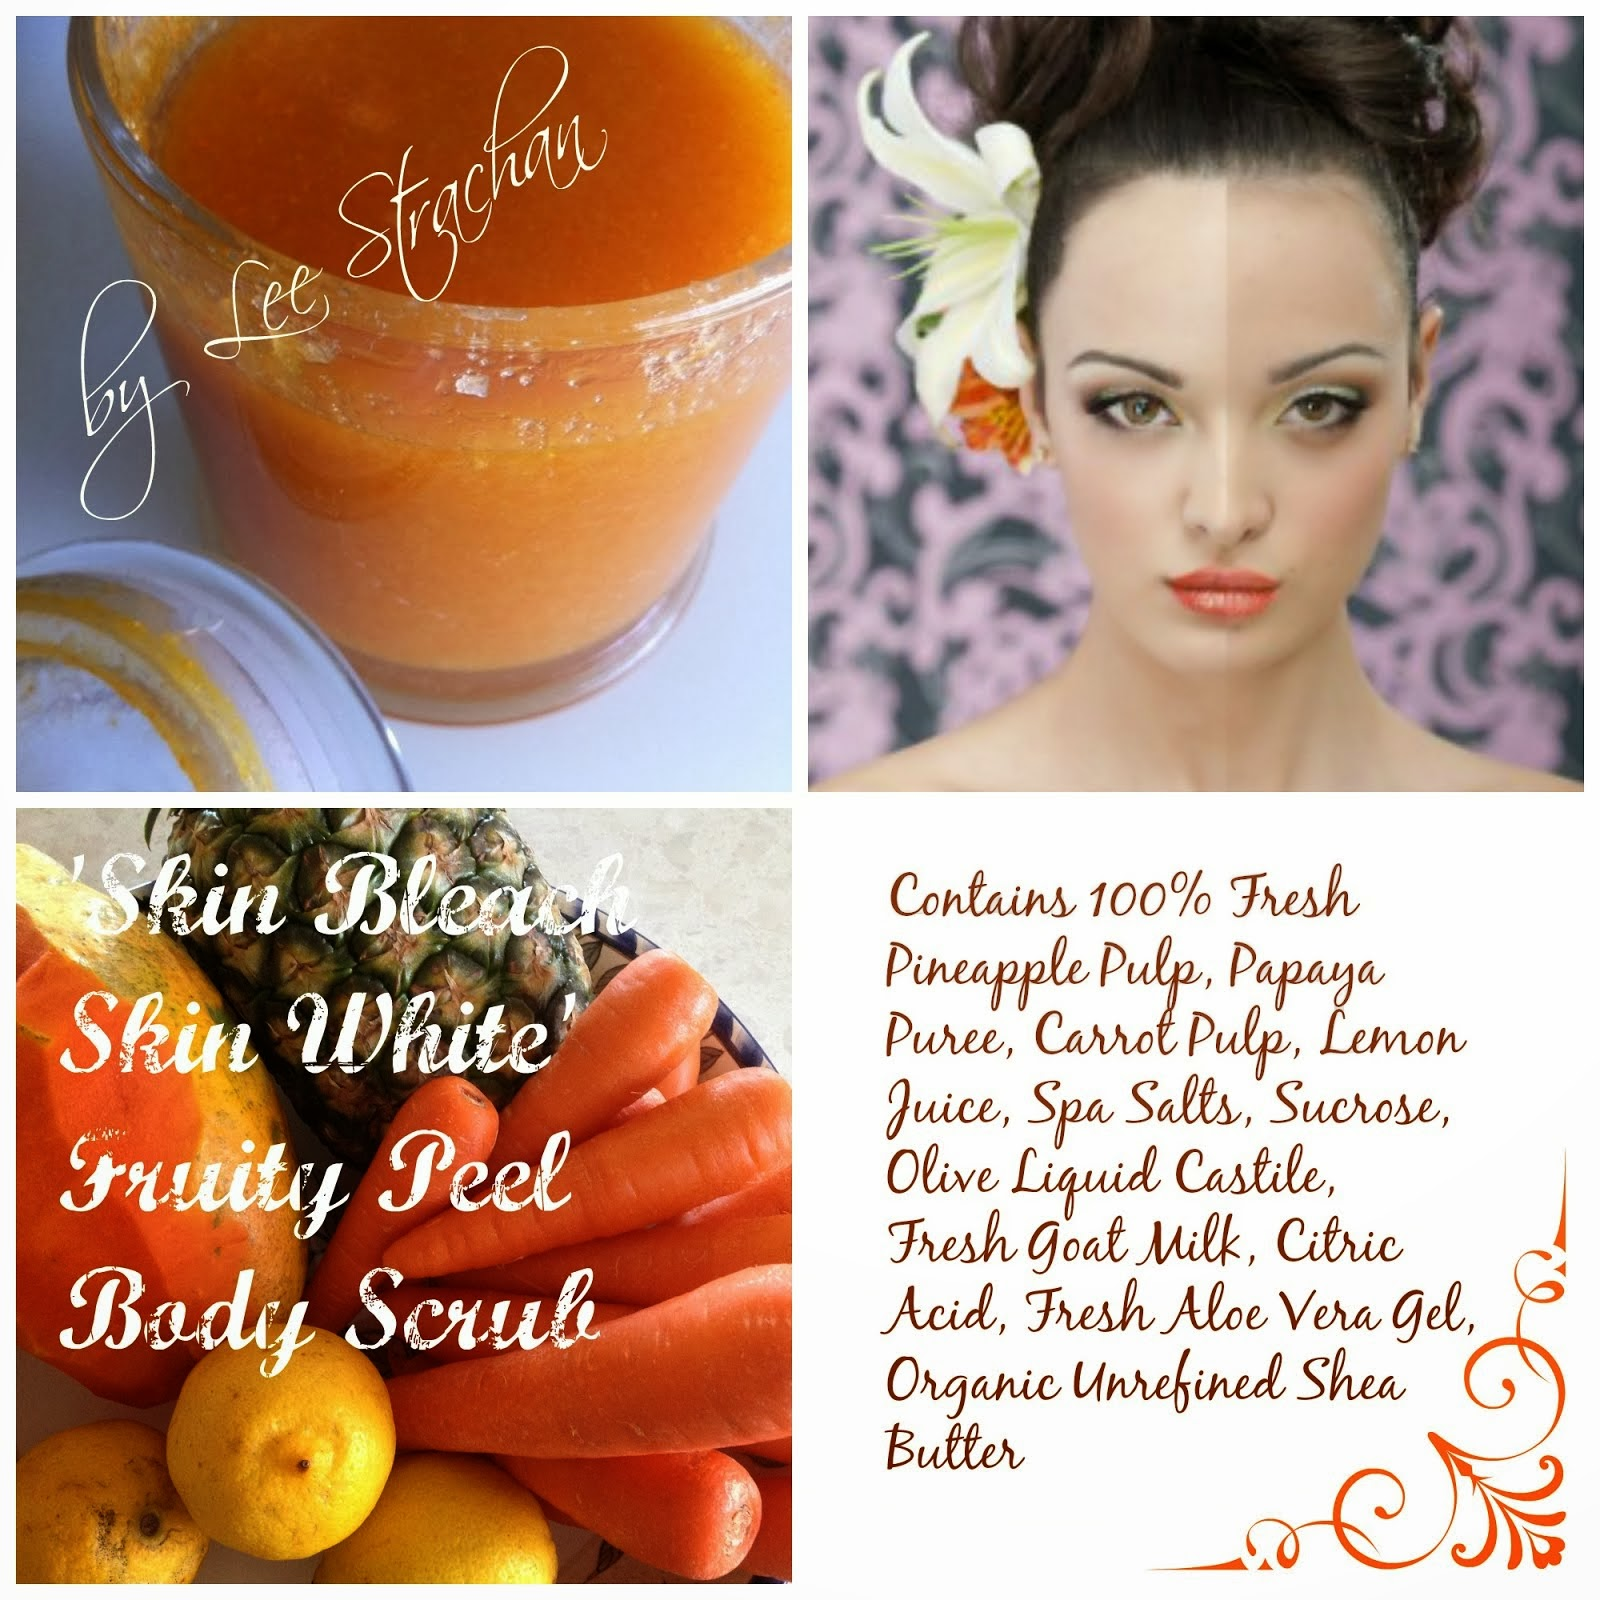 Skin Bleach Skin White -100% Natural Body Scrub by Caress By Nature Australia